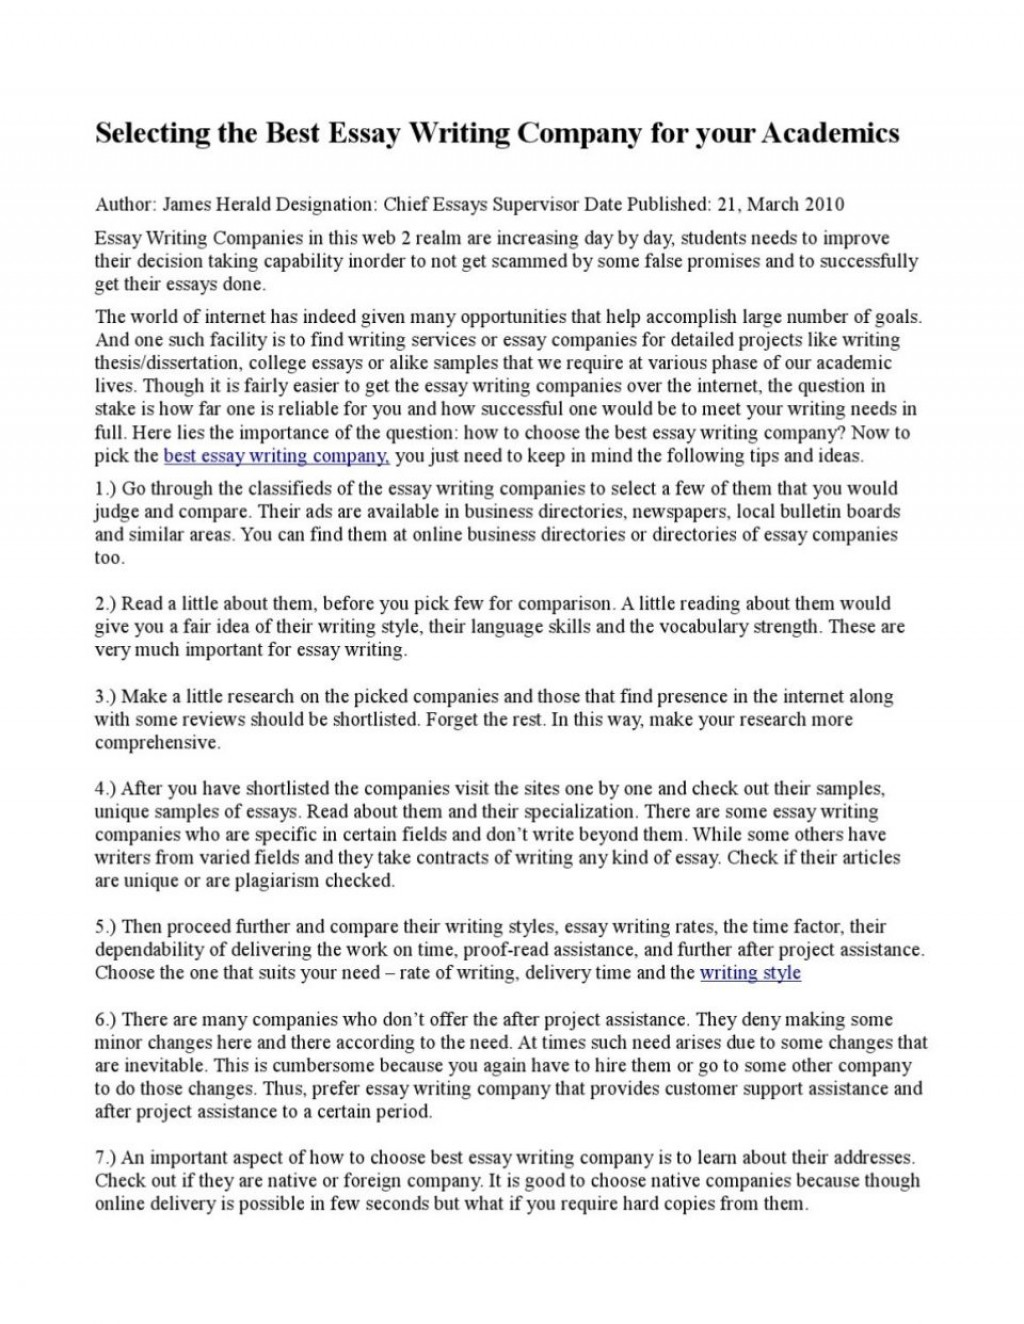 001 Essay Example Best Writing Company Uk Top Companies Websites Sites Large